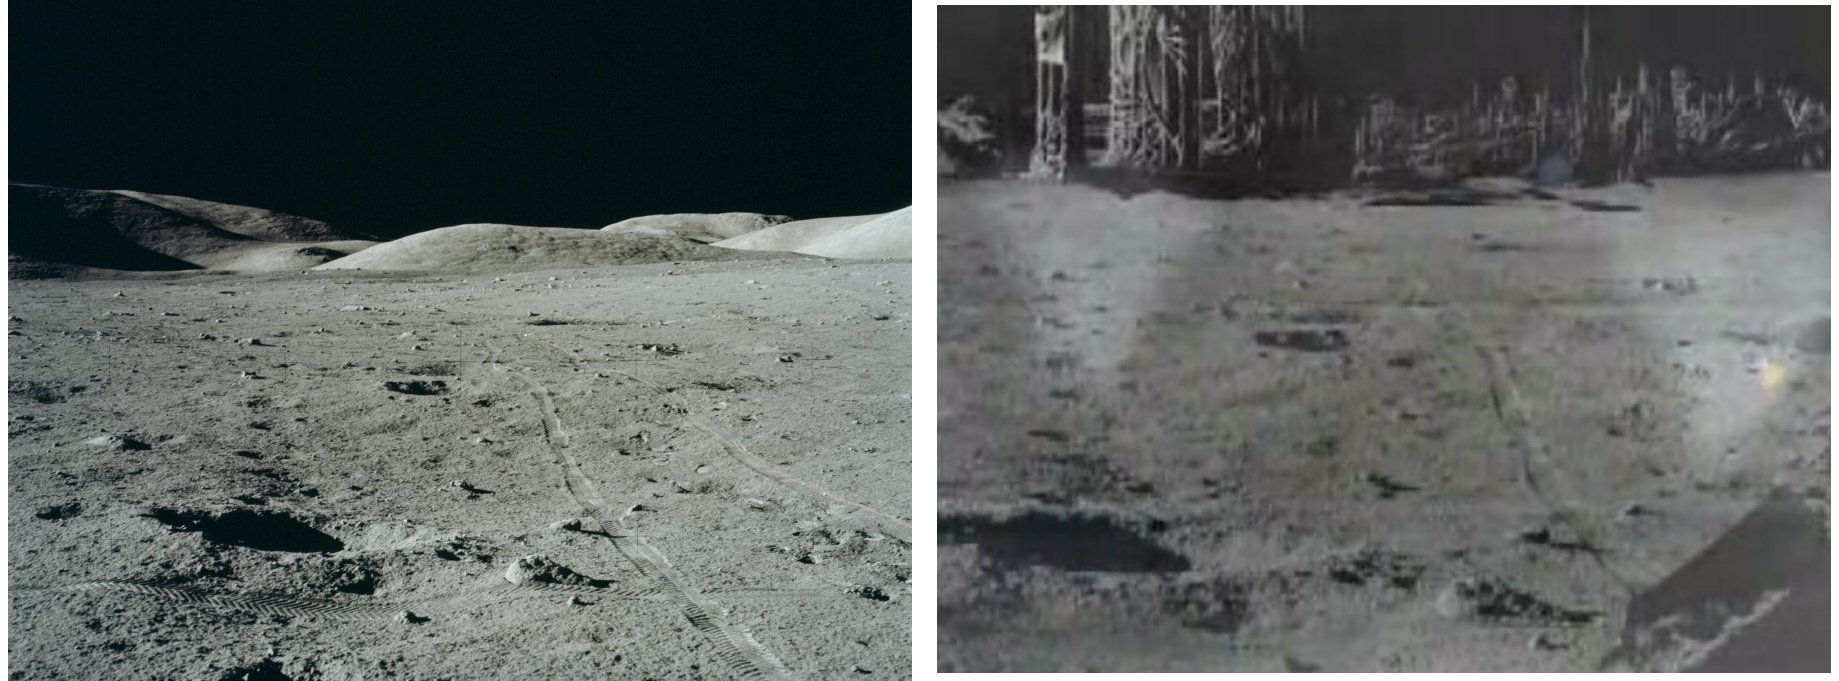 Comparison of genuine Apollo 17 photo and Apollo 20 fake